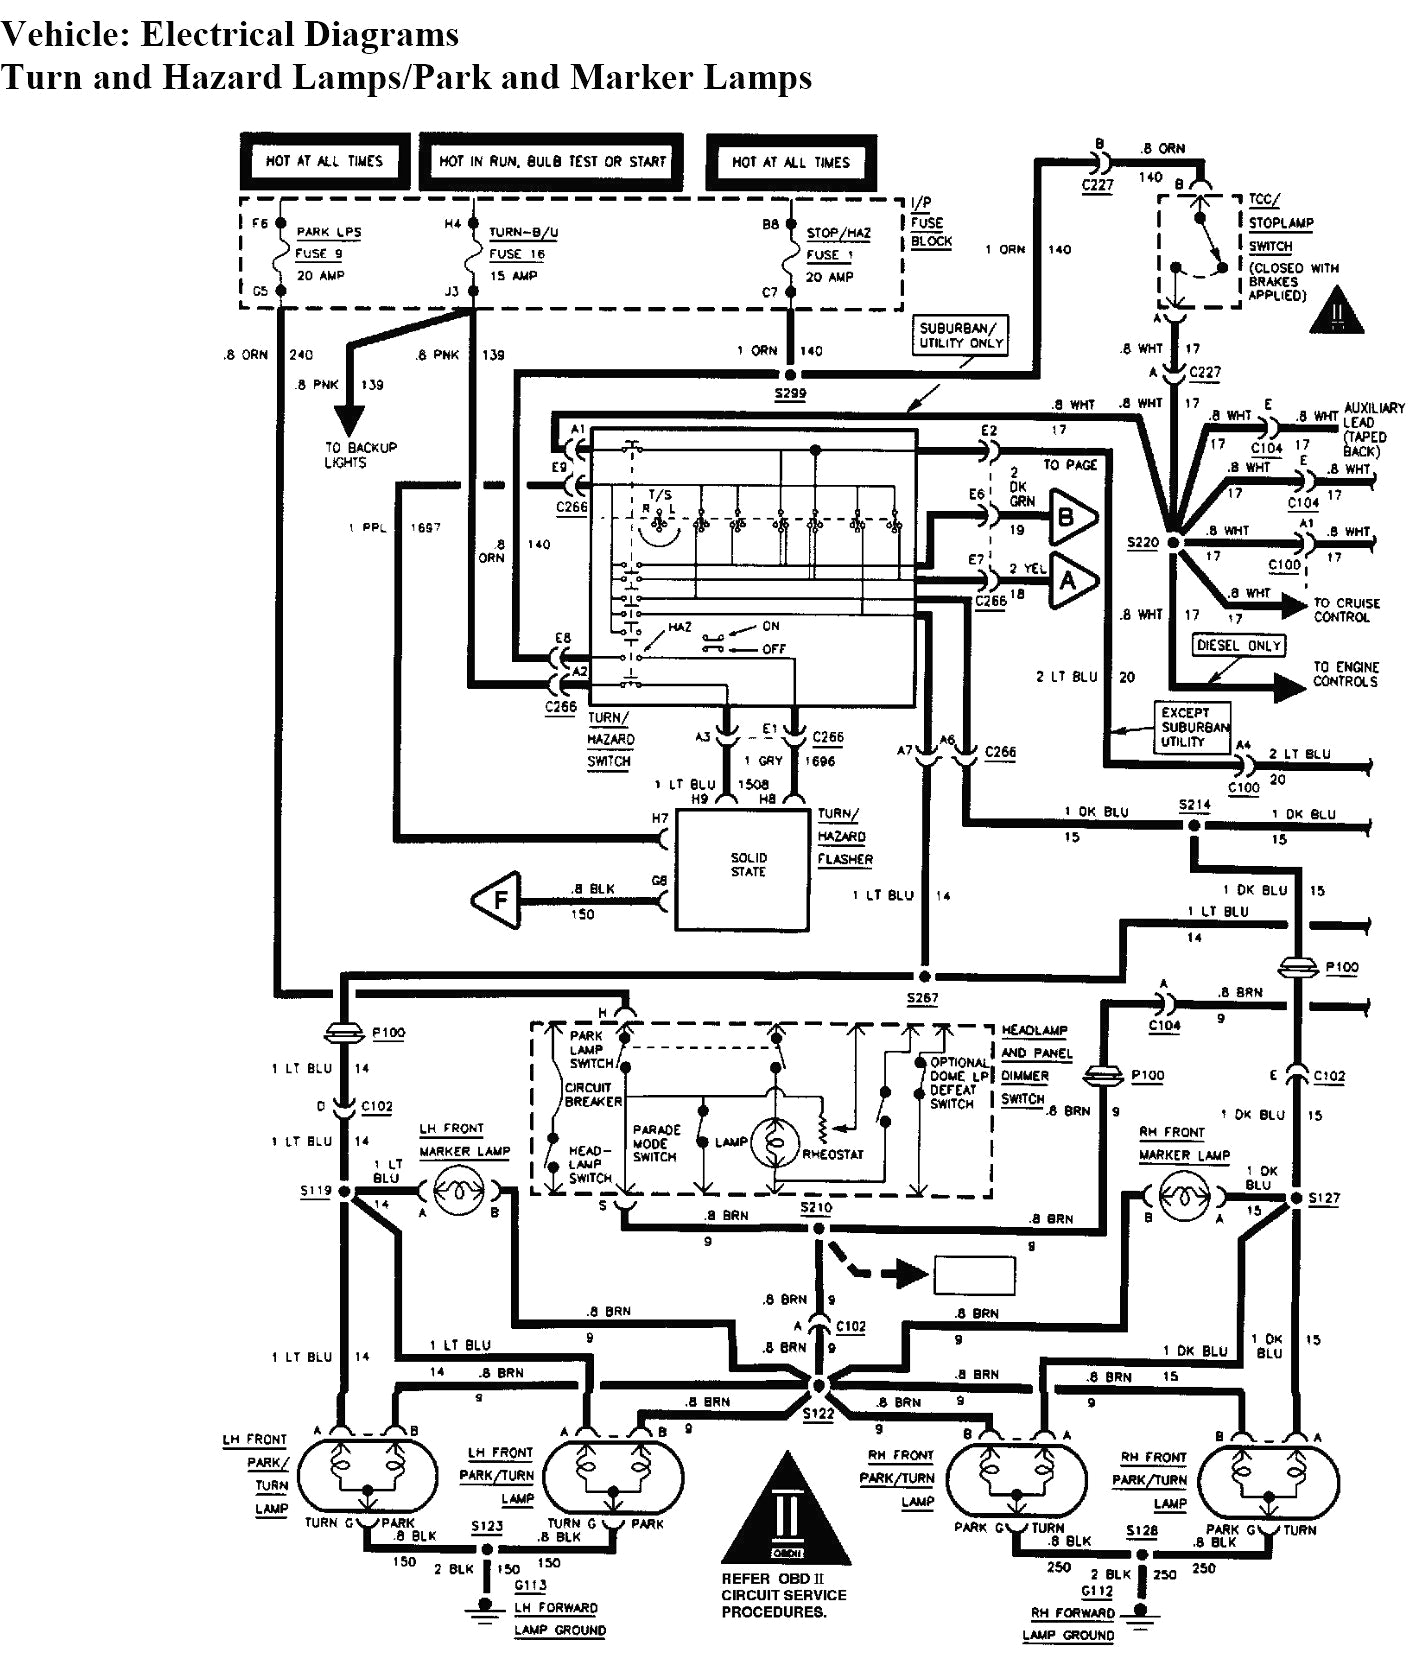 57 chevy car wiring diagram get free image about wiring diagram